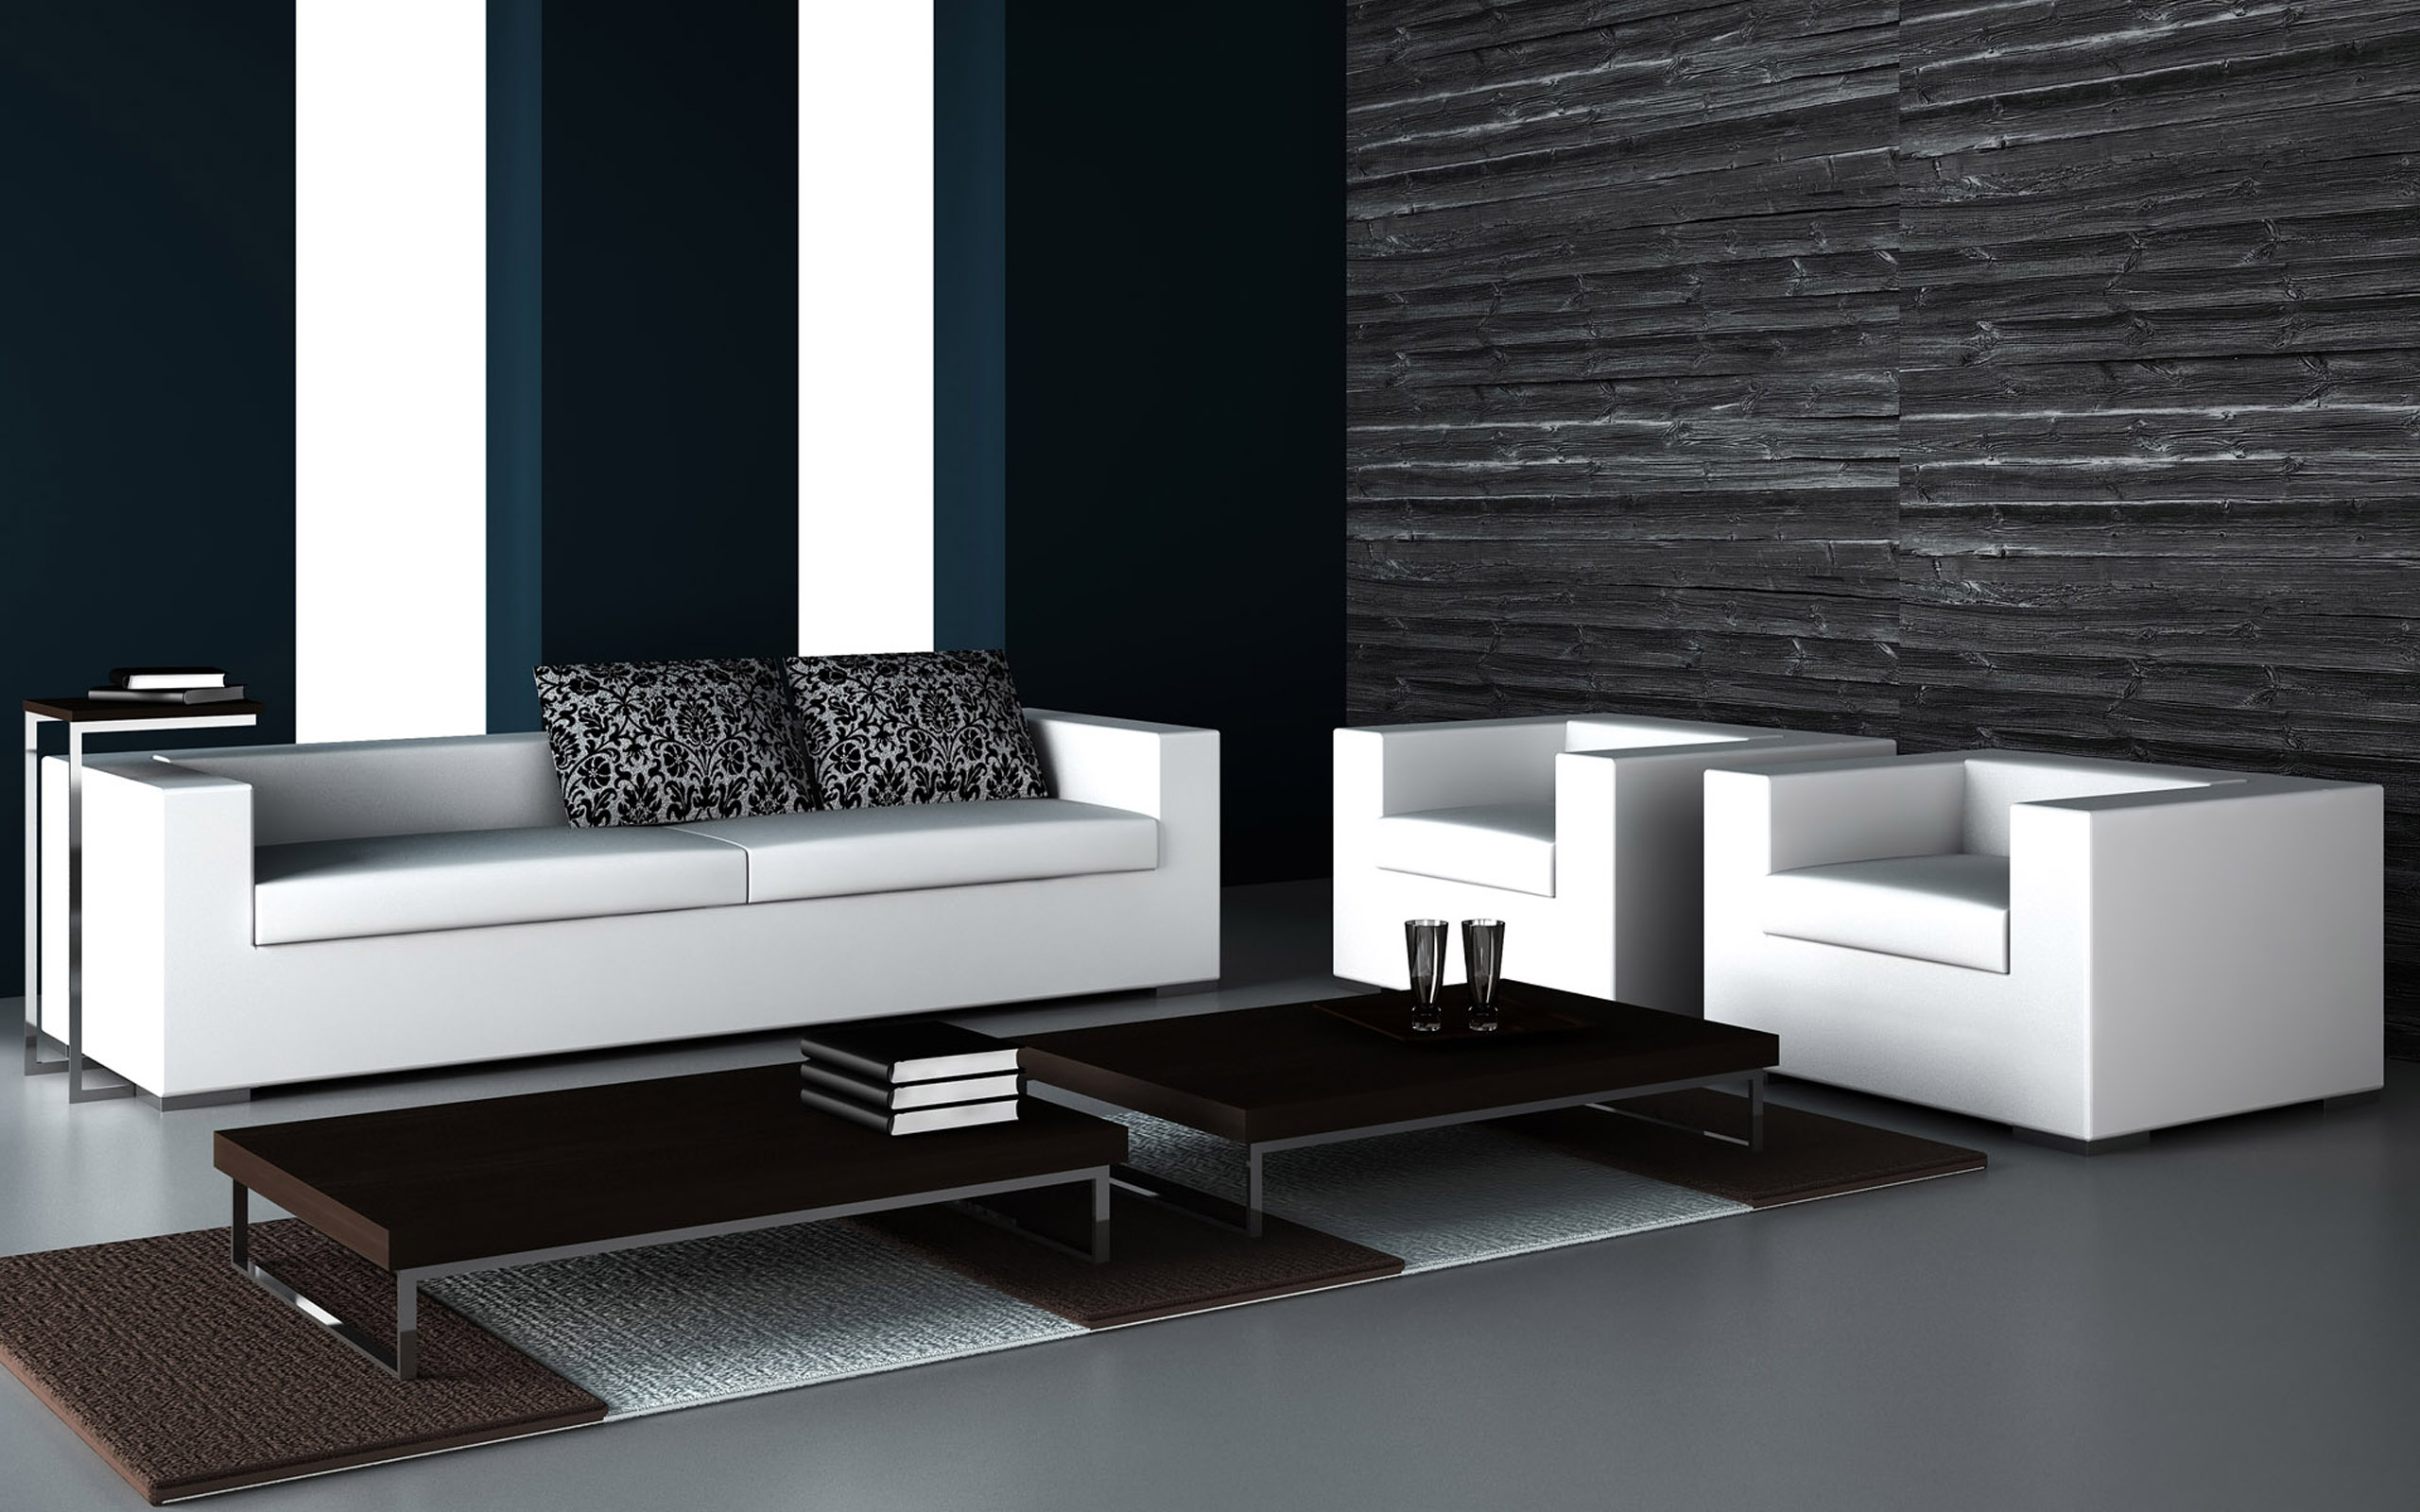 Black and white living room tasteful tv stands and unit designs for your modern living room by